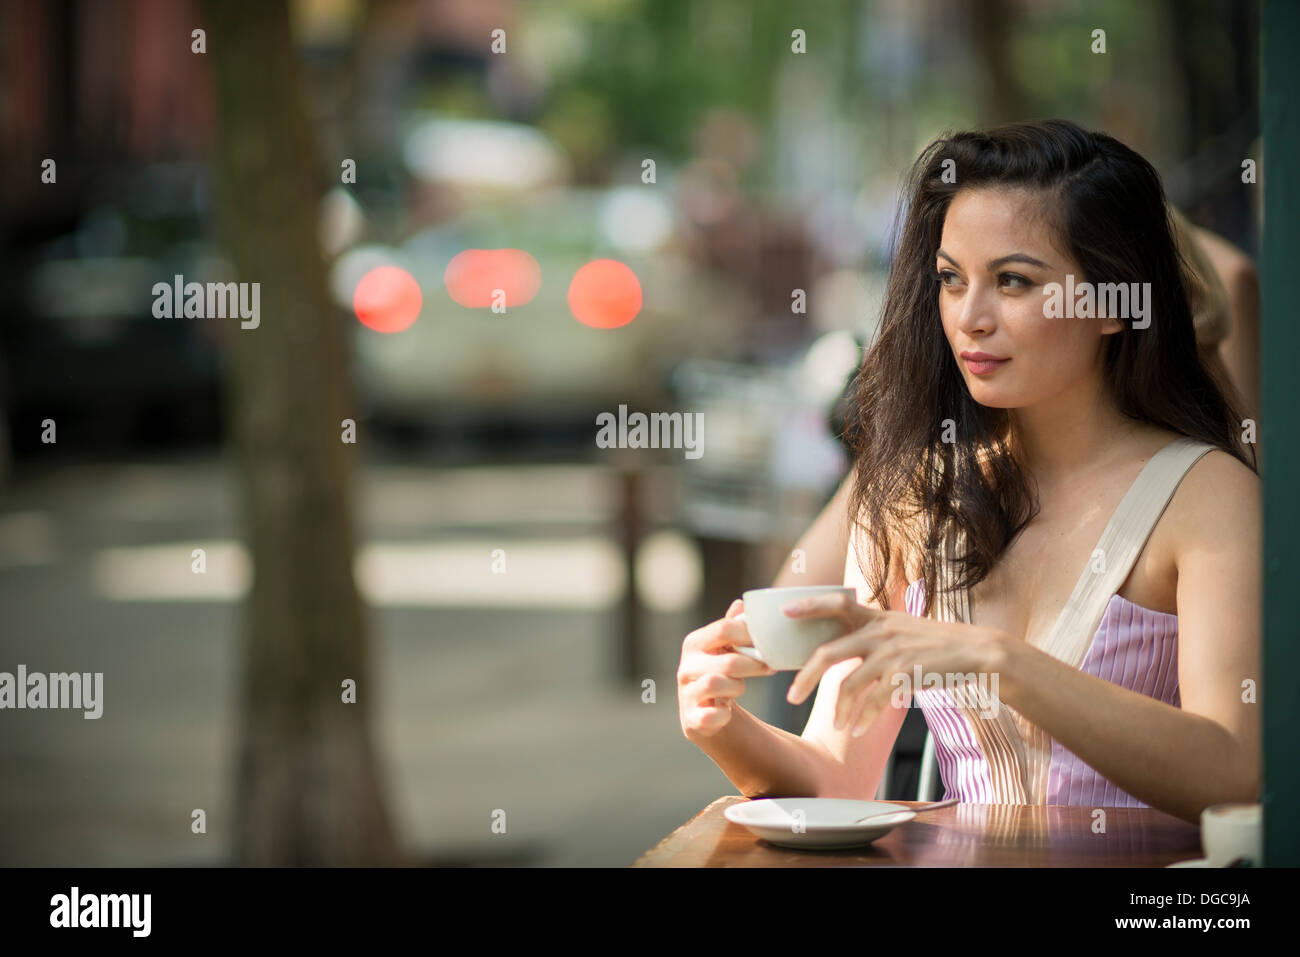 Mid adult women drinking coffee in pavement cafe - Stock Image